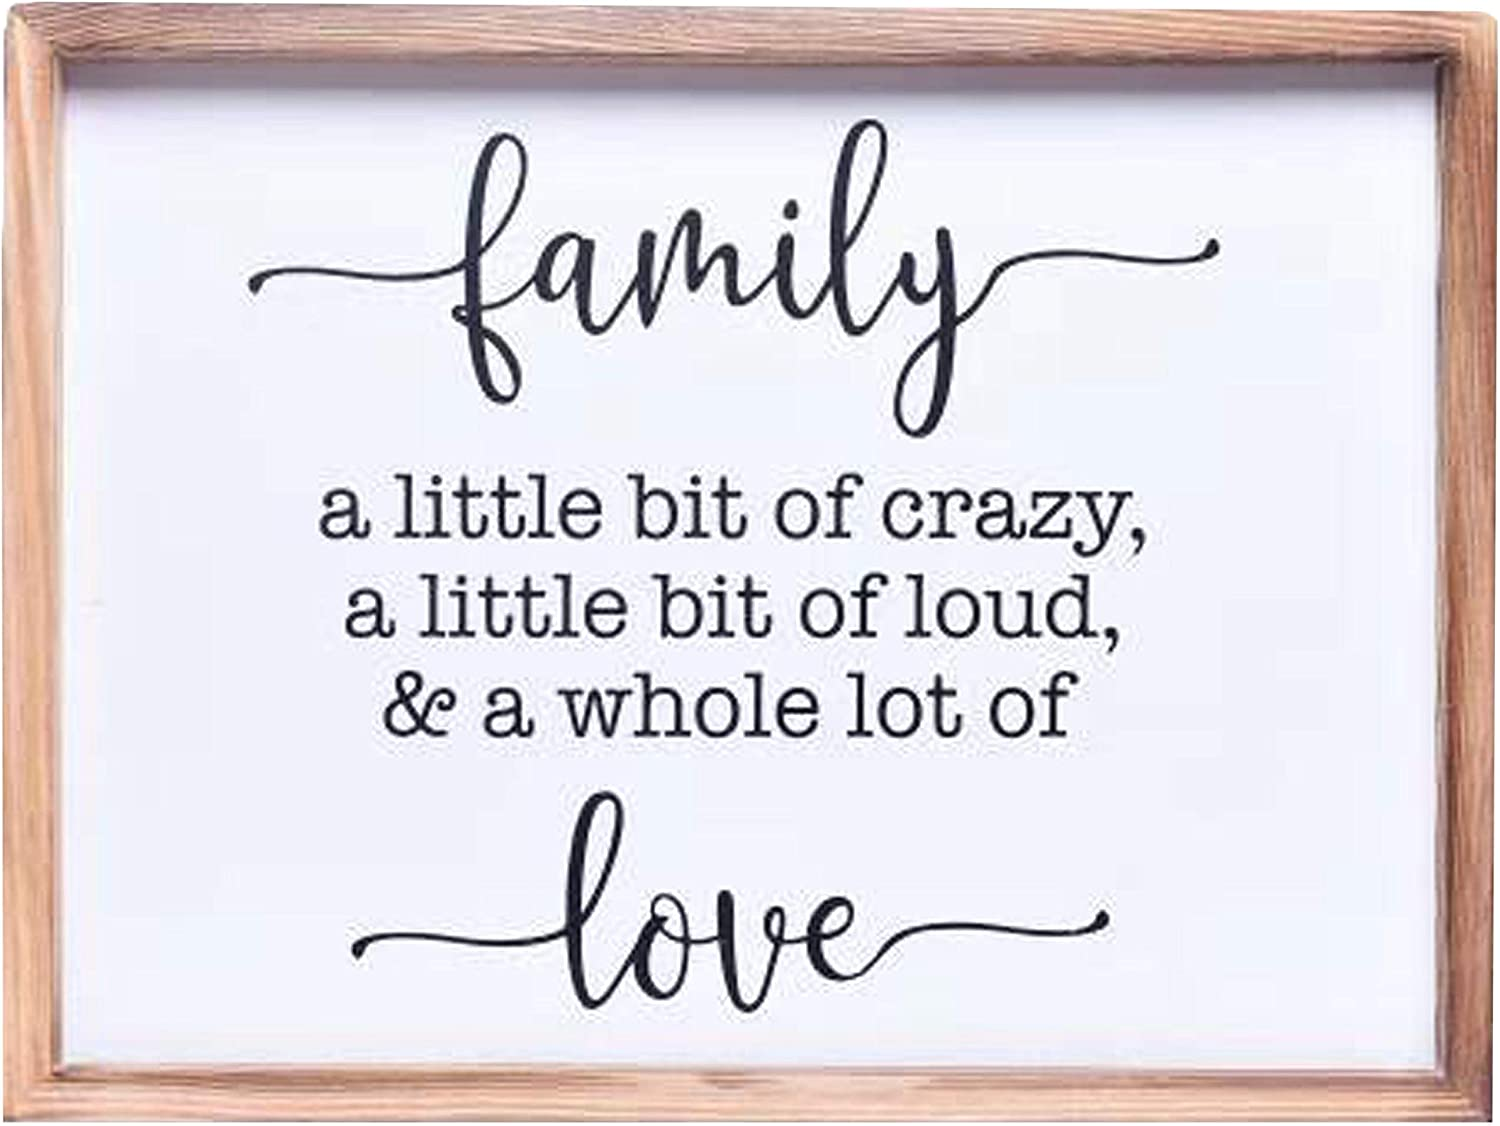 Farmhouse Decor - Modern Rustic Wall Art Home Decor - Family A Little Bit of Crazy and a Whole Lot of Love Sign - Solid Wood Framed Printed Quote for Living Room Decoration - Approx. 12x16 Inches